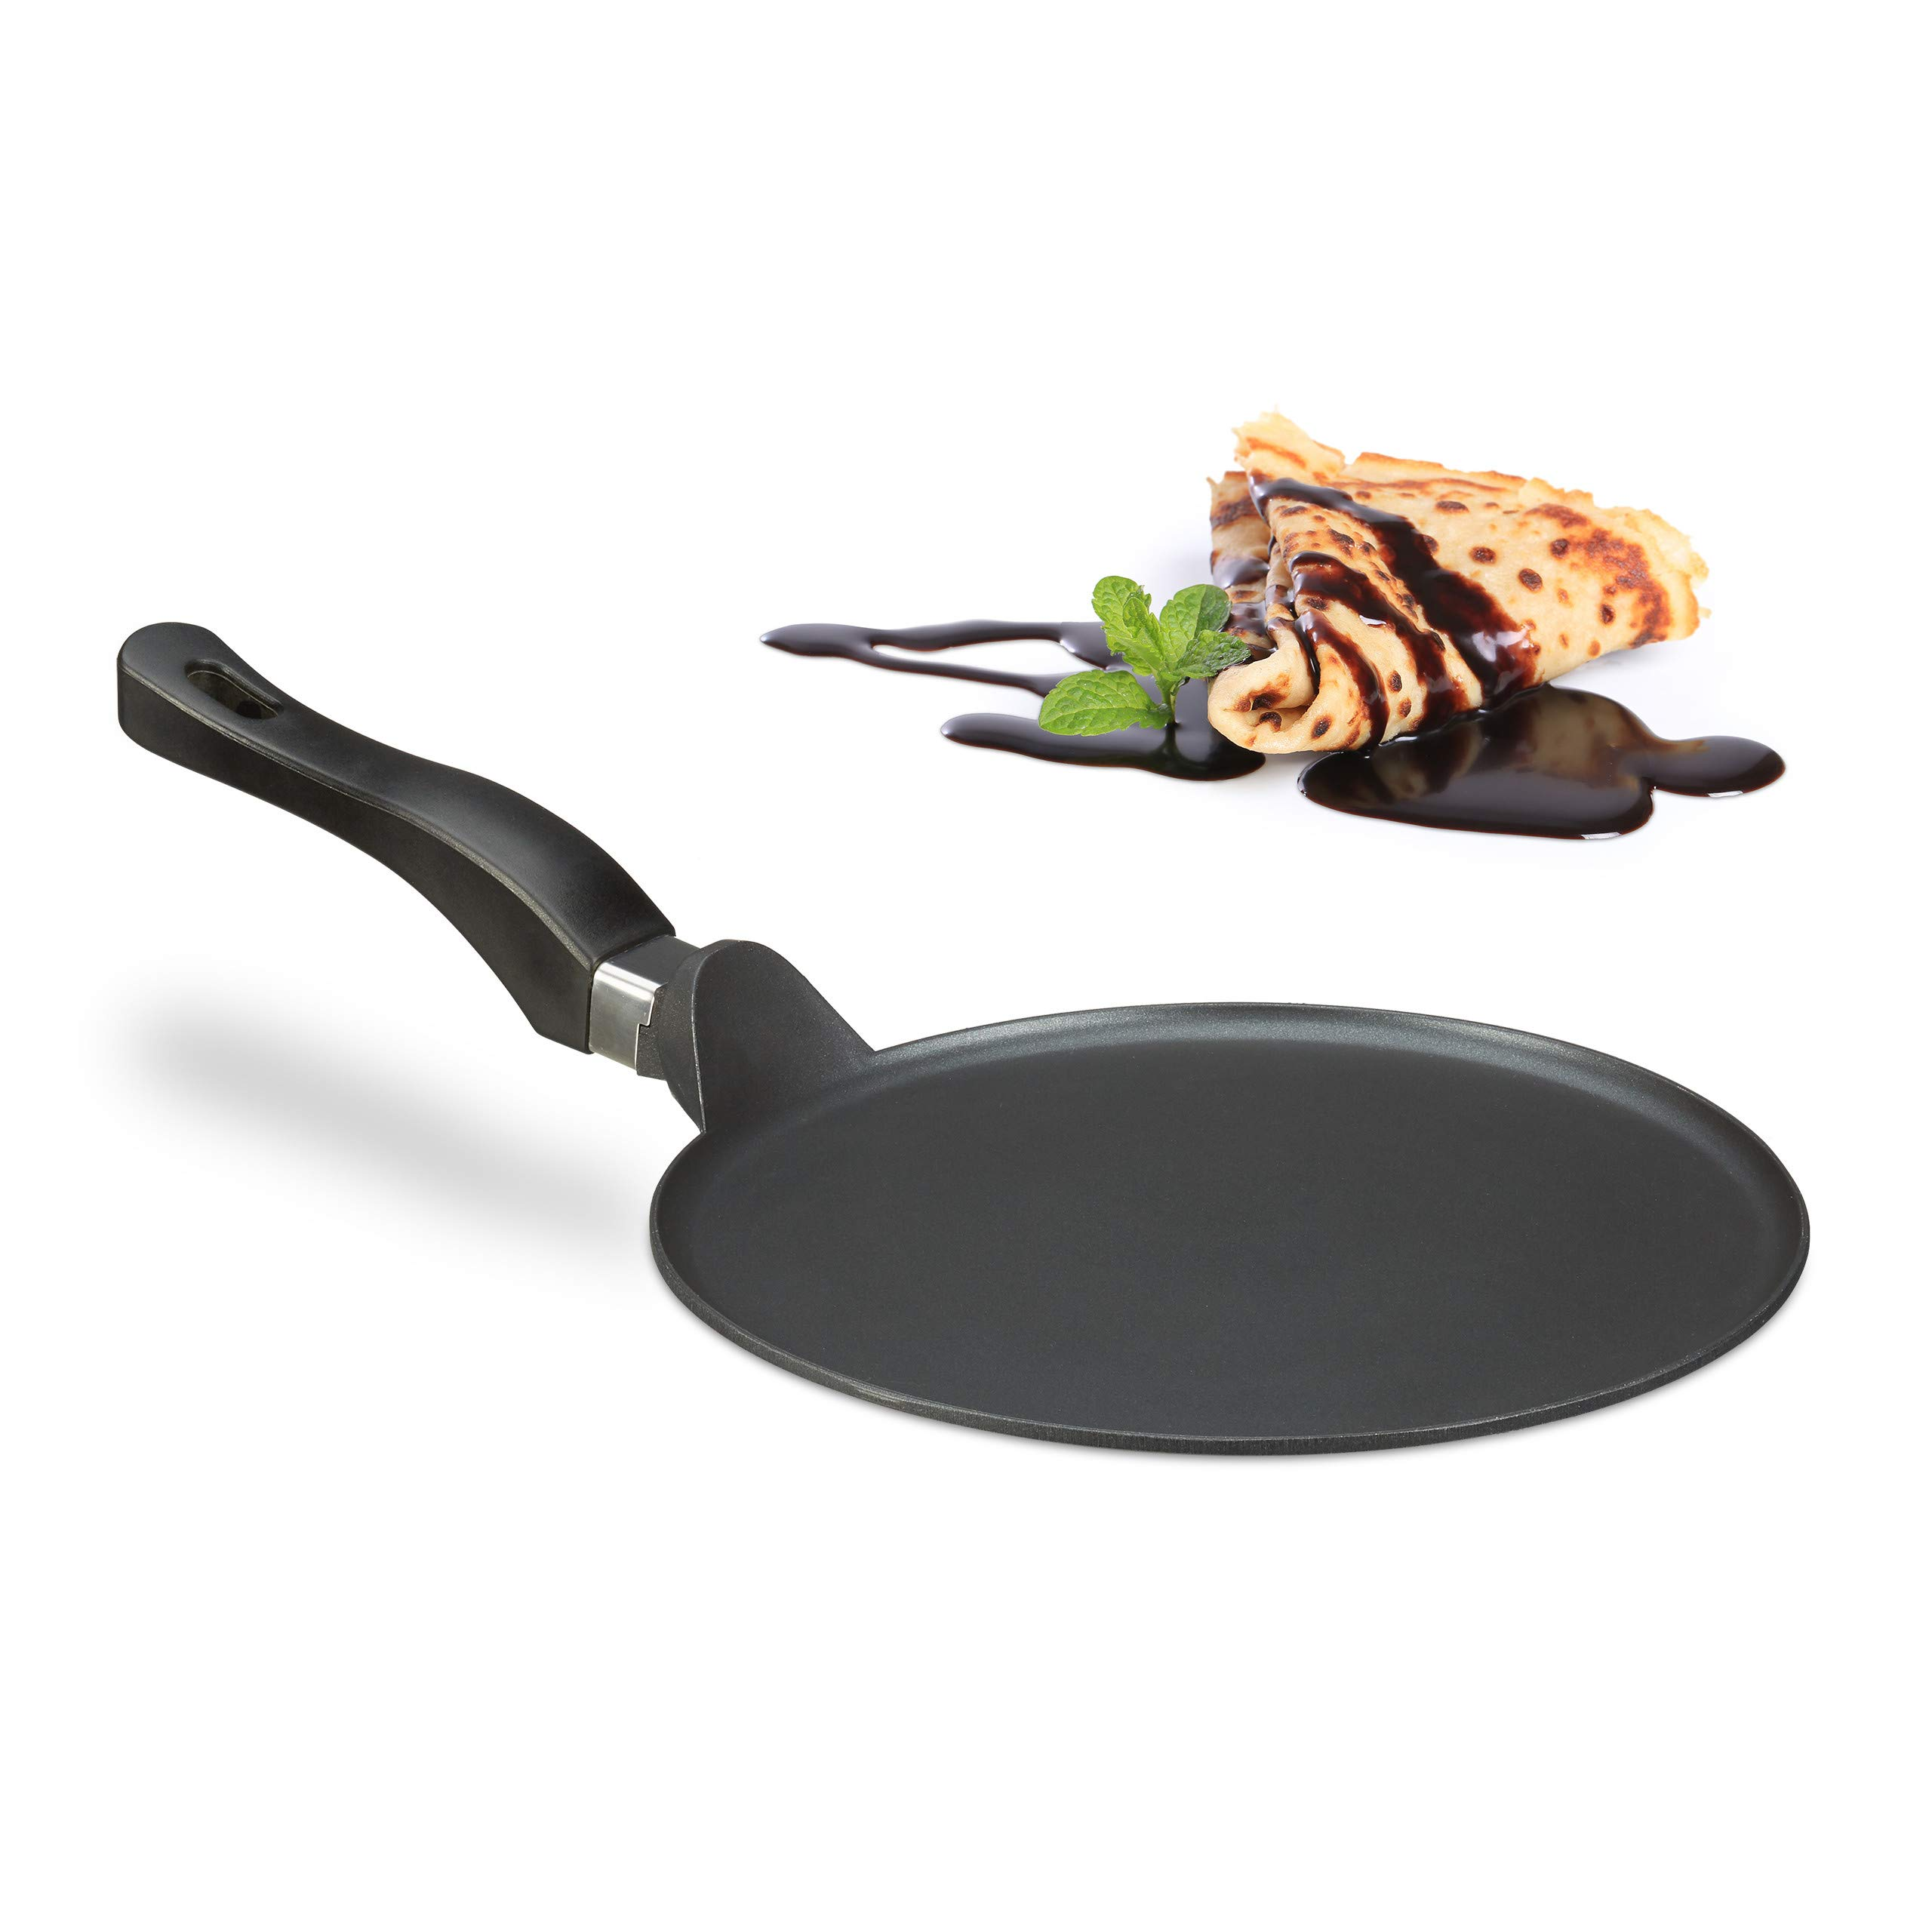 Relaxdays Crepe Pan, 25 cm, Non-Stick Coating, Cast Aluminium Pancake Skillet, Easy to Clean, Extra-Flat, Black by Relaxdays